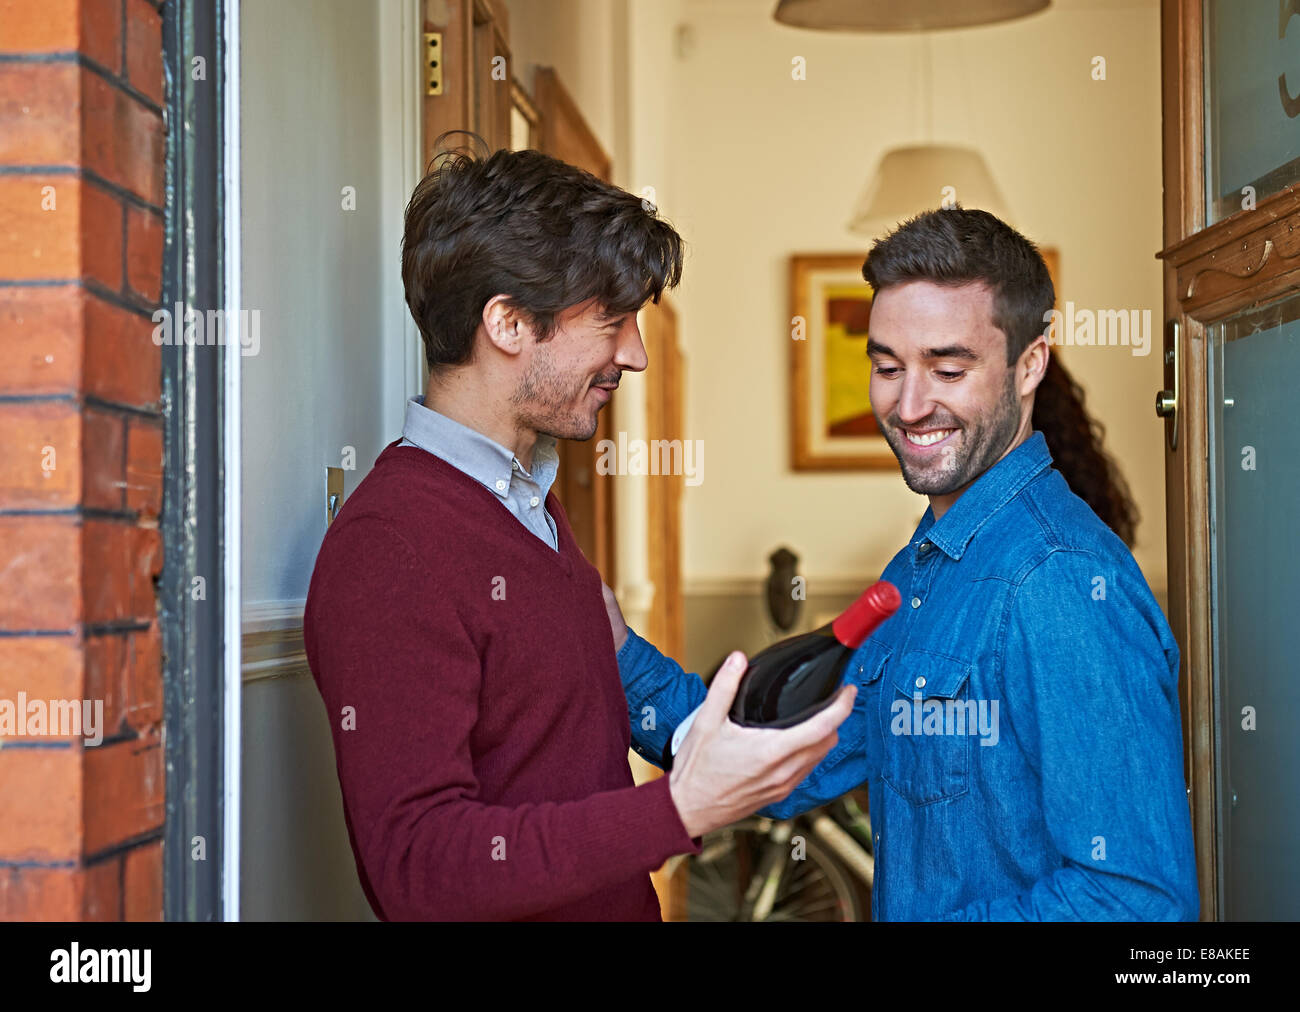 Men with bottle of wine smiling at front door - Stock Image